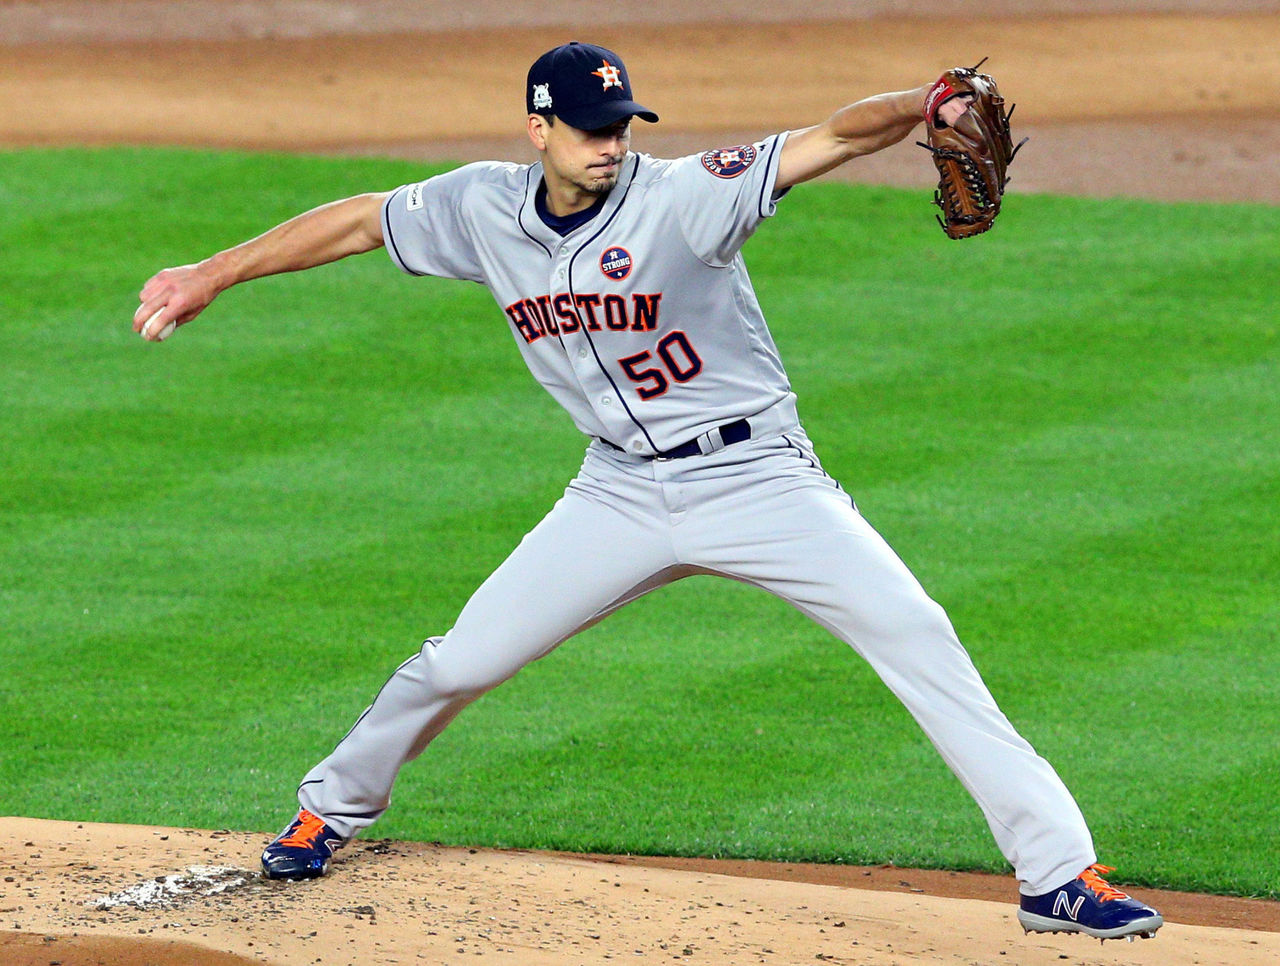 Cropped 2017 10 17t003305z 749596543 nocid rtrmadp 3 mlb alcs houston astros at new york yankees